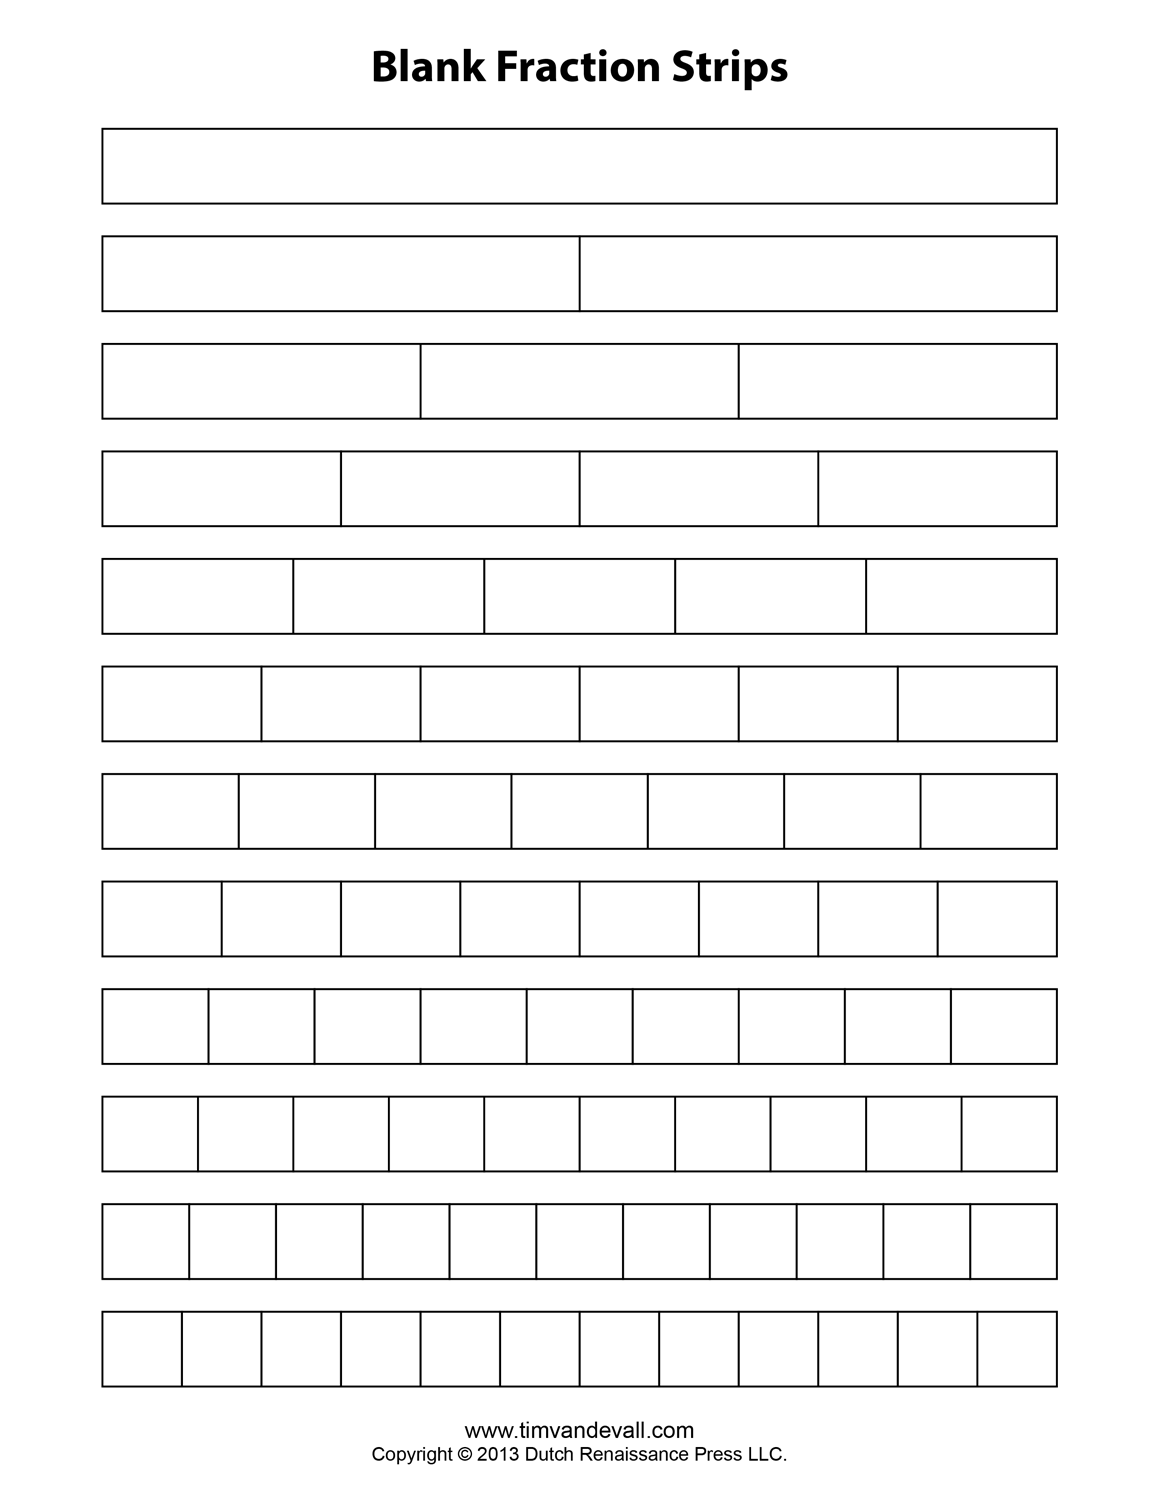 worksheet Fraction Bar Worksheets blank fraction bars for students to fill in during testing math testing